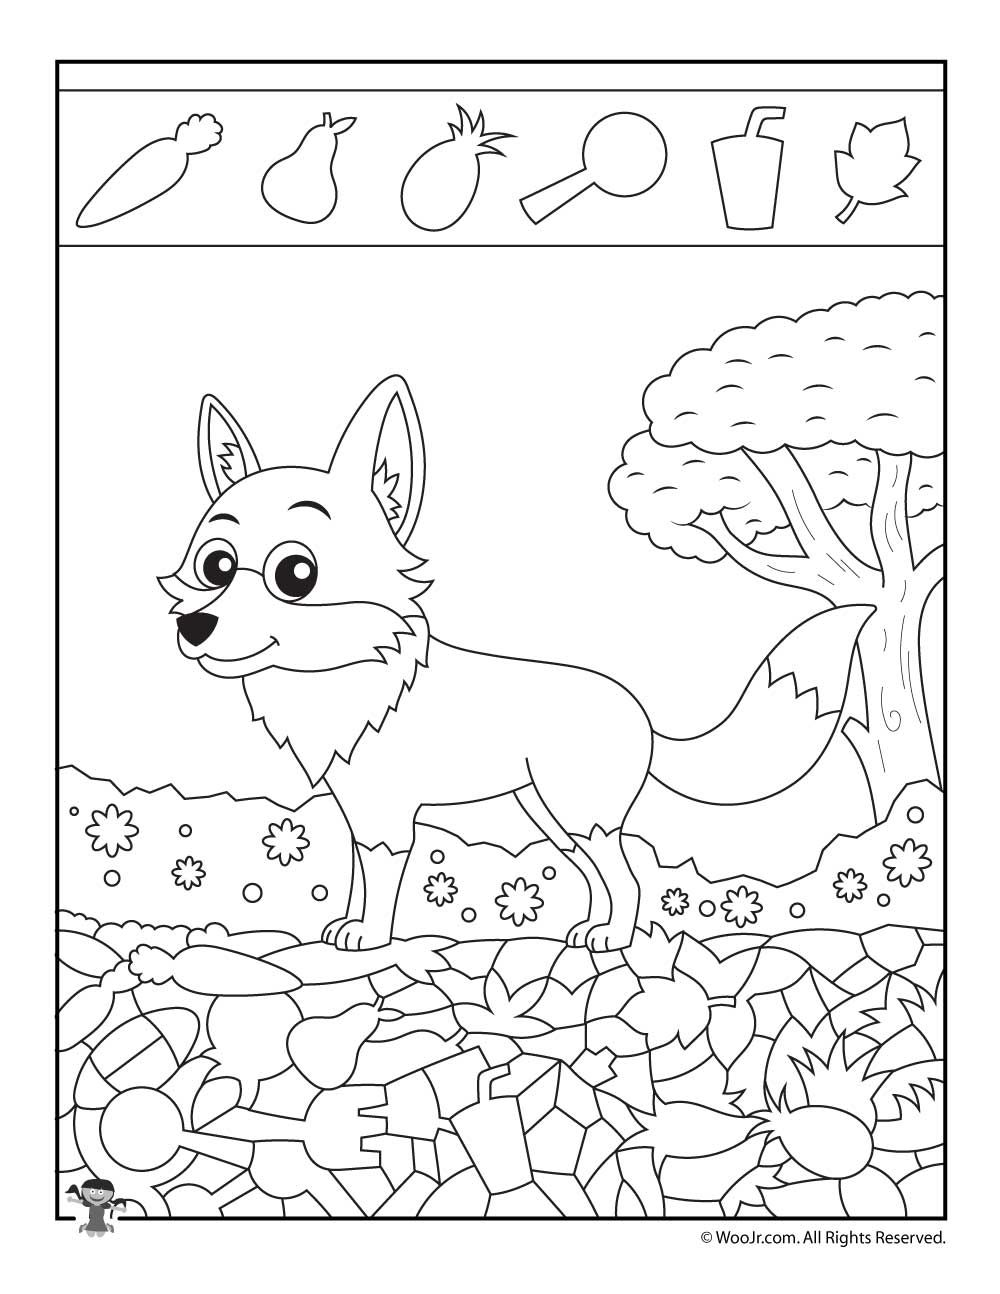 easy hidden pictures with animals printable activity pages foxes hidden pictures hidden. Black Bedroom Furniture Sets. Home Design Ideas